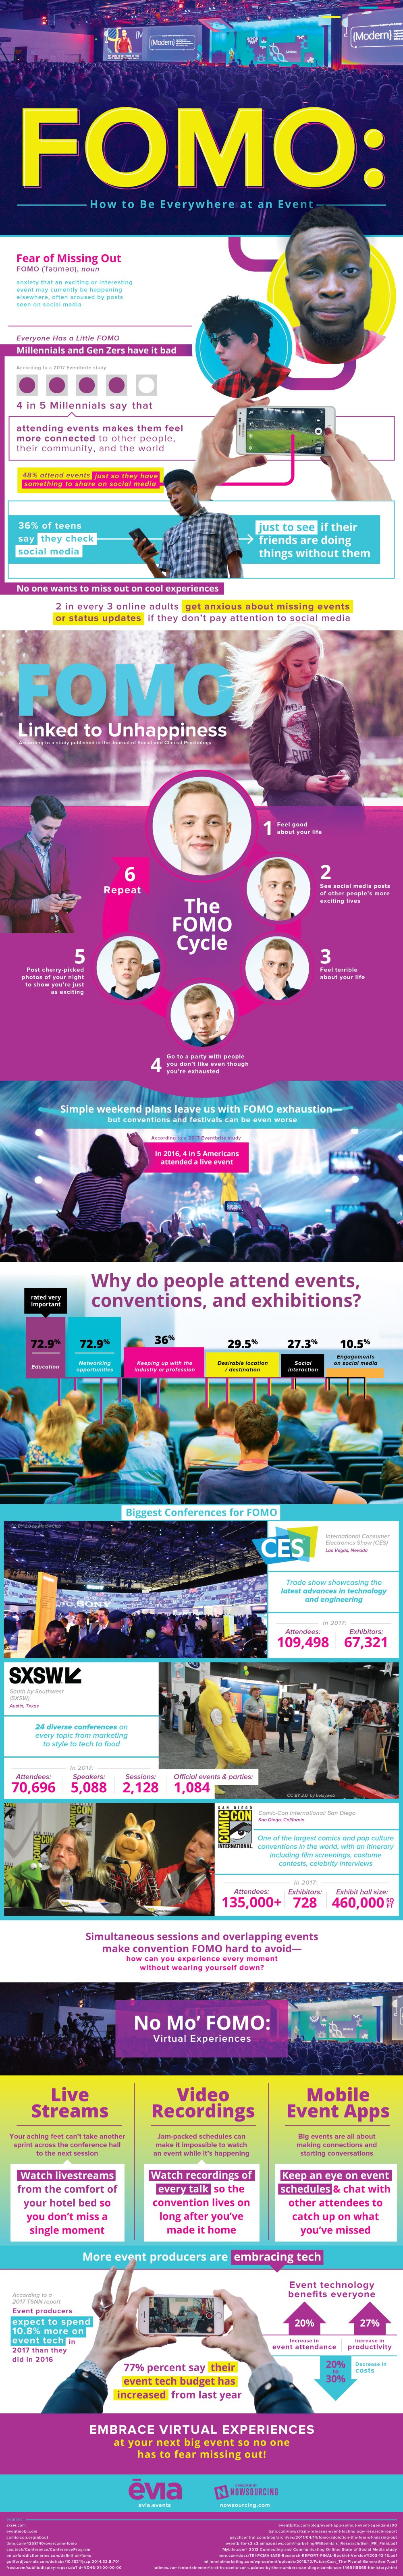 FOMO: how to be everywhere at an event - infographic